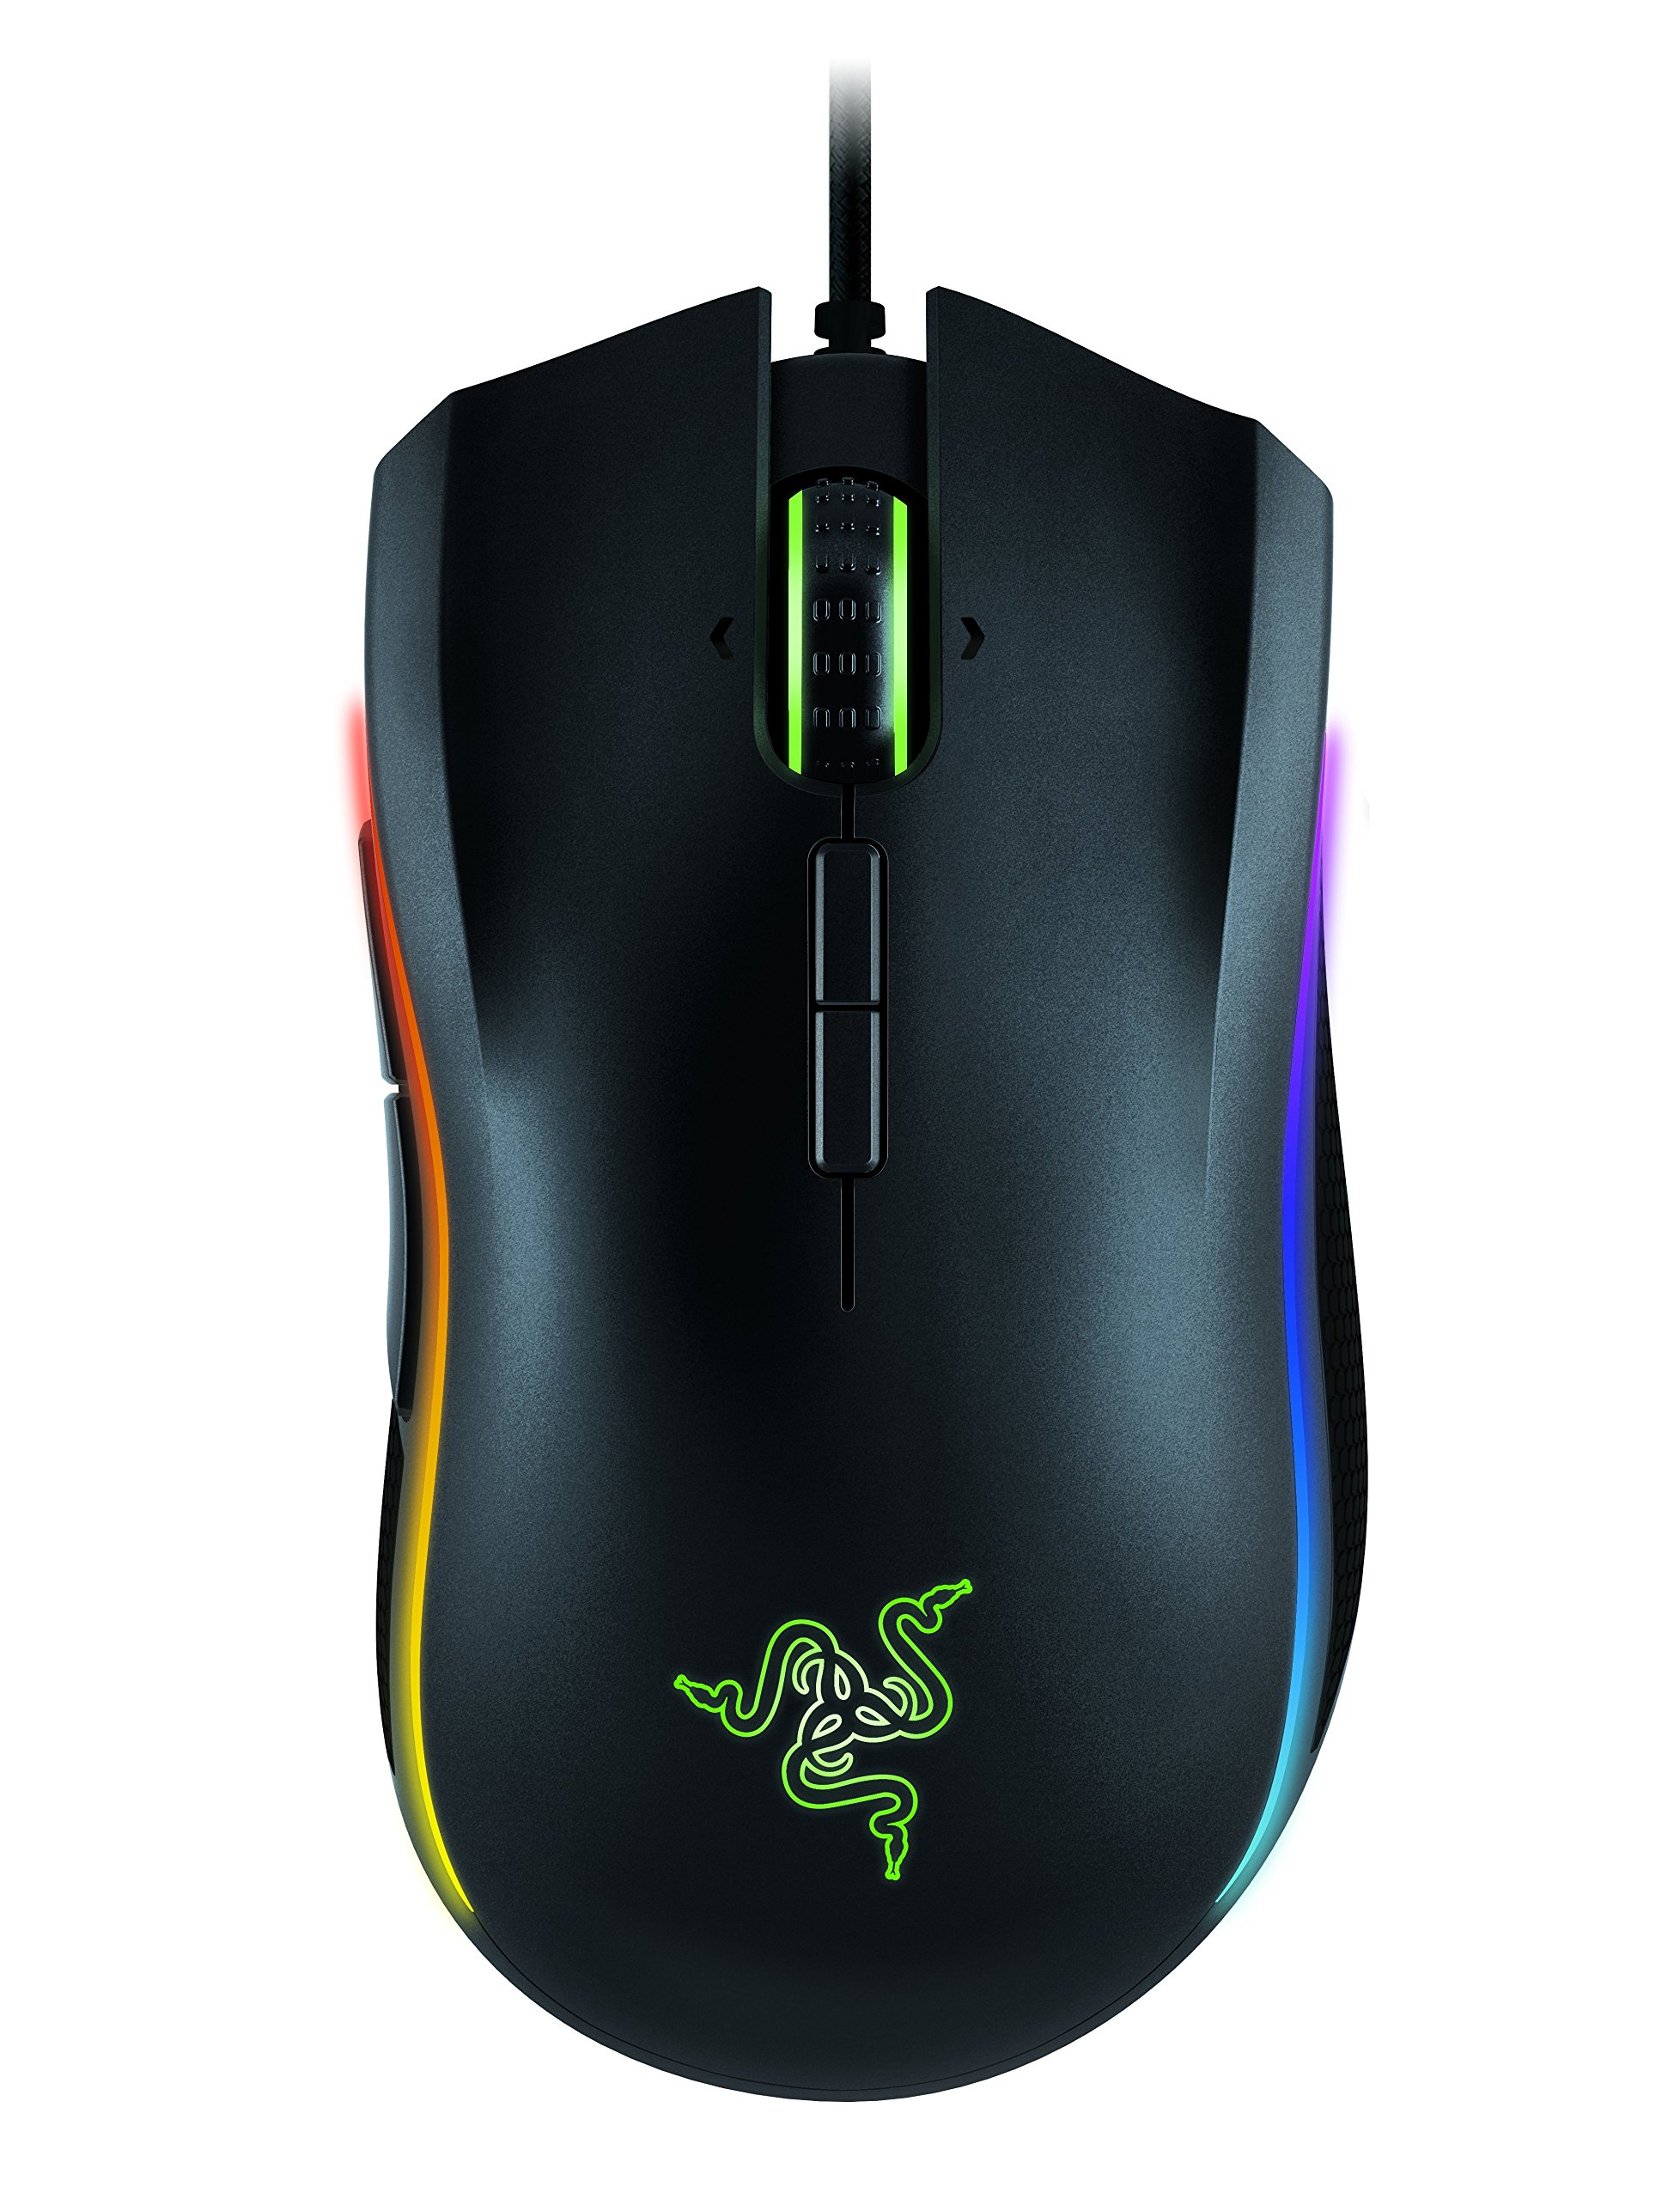 Razer Mamba Tournament Edition - Professional Grade Chroma Ergonomic Gaming Mouse - 16,000 DPI - eSport Performance by Razer